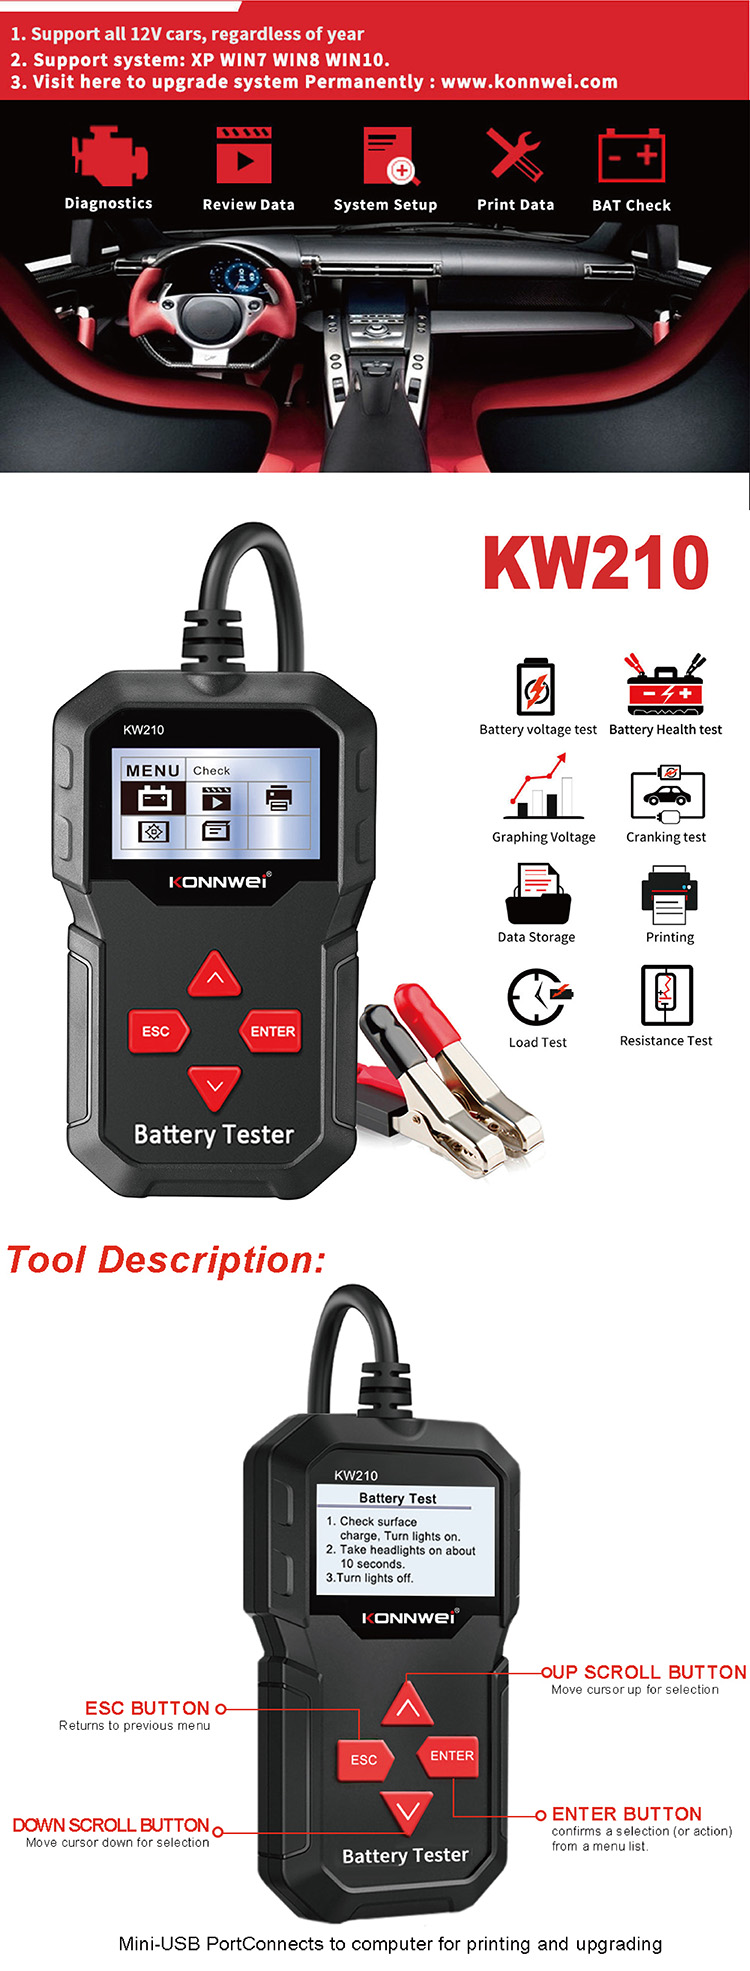 Digital 12v Car Battery Tester Automotive Battery Load Tester And Analyzer With Battery Life Percentage Voltage Resistance Cca Buy Battery Tester With Printer Automotive Battery Load Tester Cca Battery Tester Product On Alibaba Com